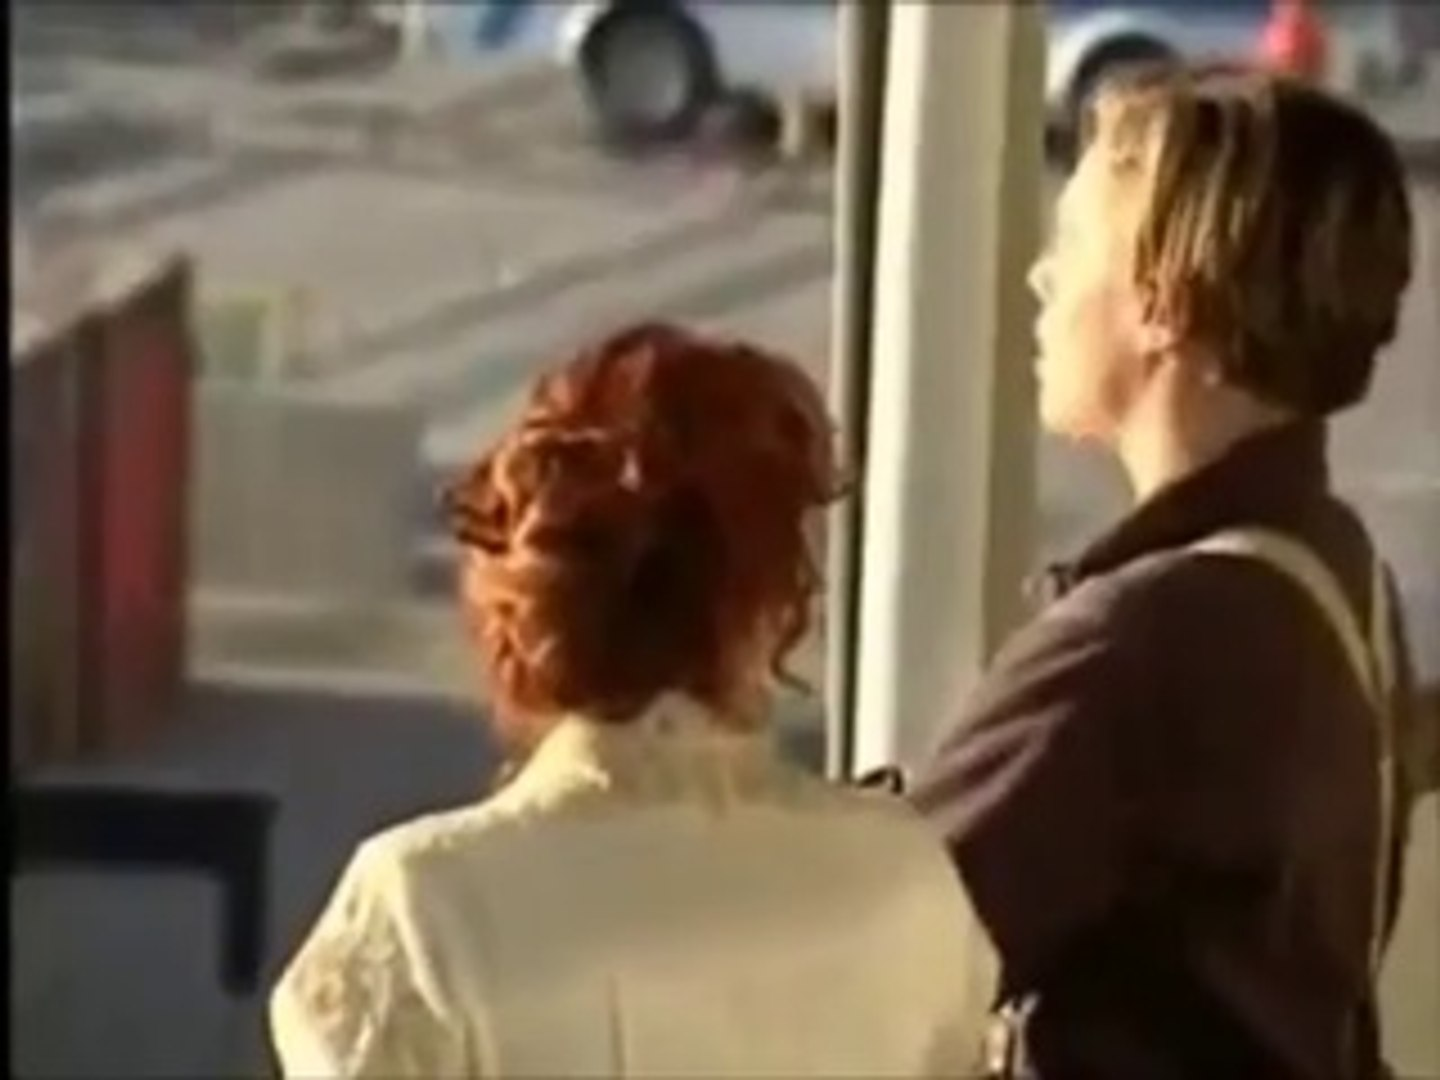 TITANIC - BEHIND THE SCENES AND BLOOPERS (1997) - Leonardo DiCaprio, Kate  Winslet - Entertainment/Celebrity/Movies